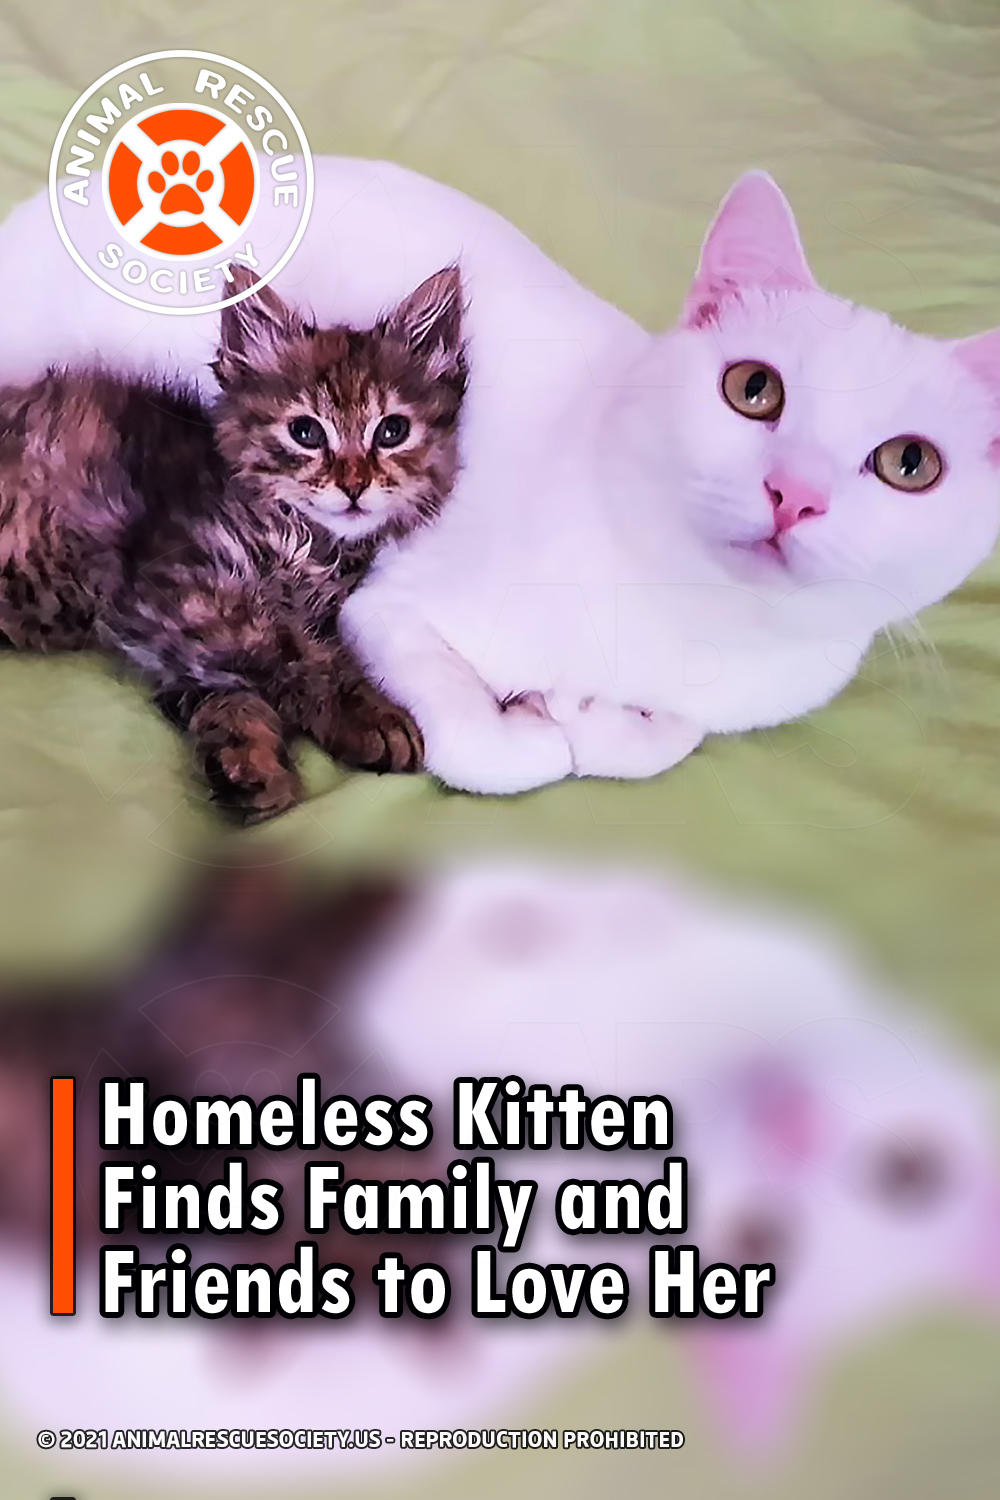 Homeless Kitten Finds Family and Friends to Love Her